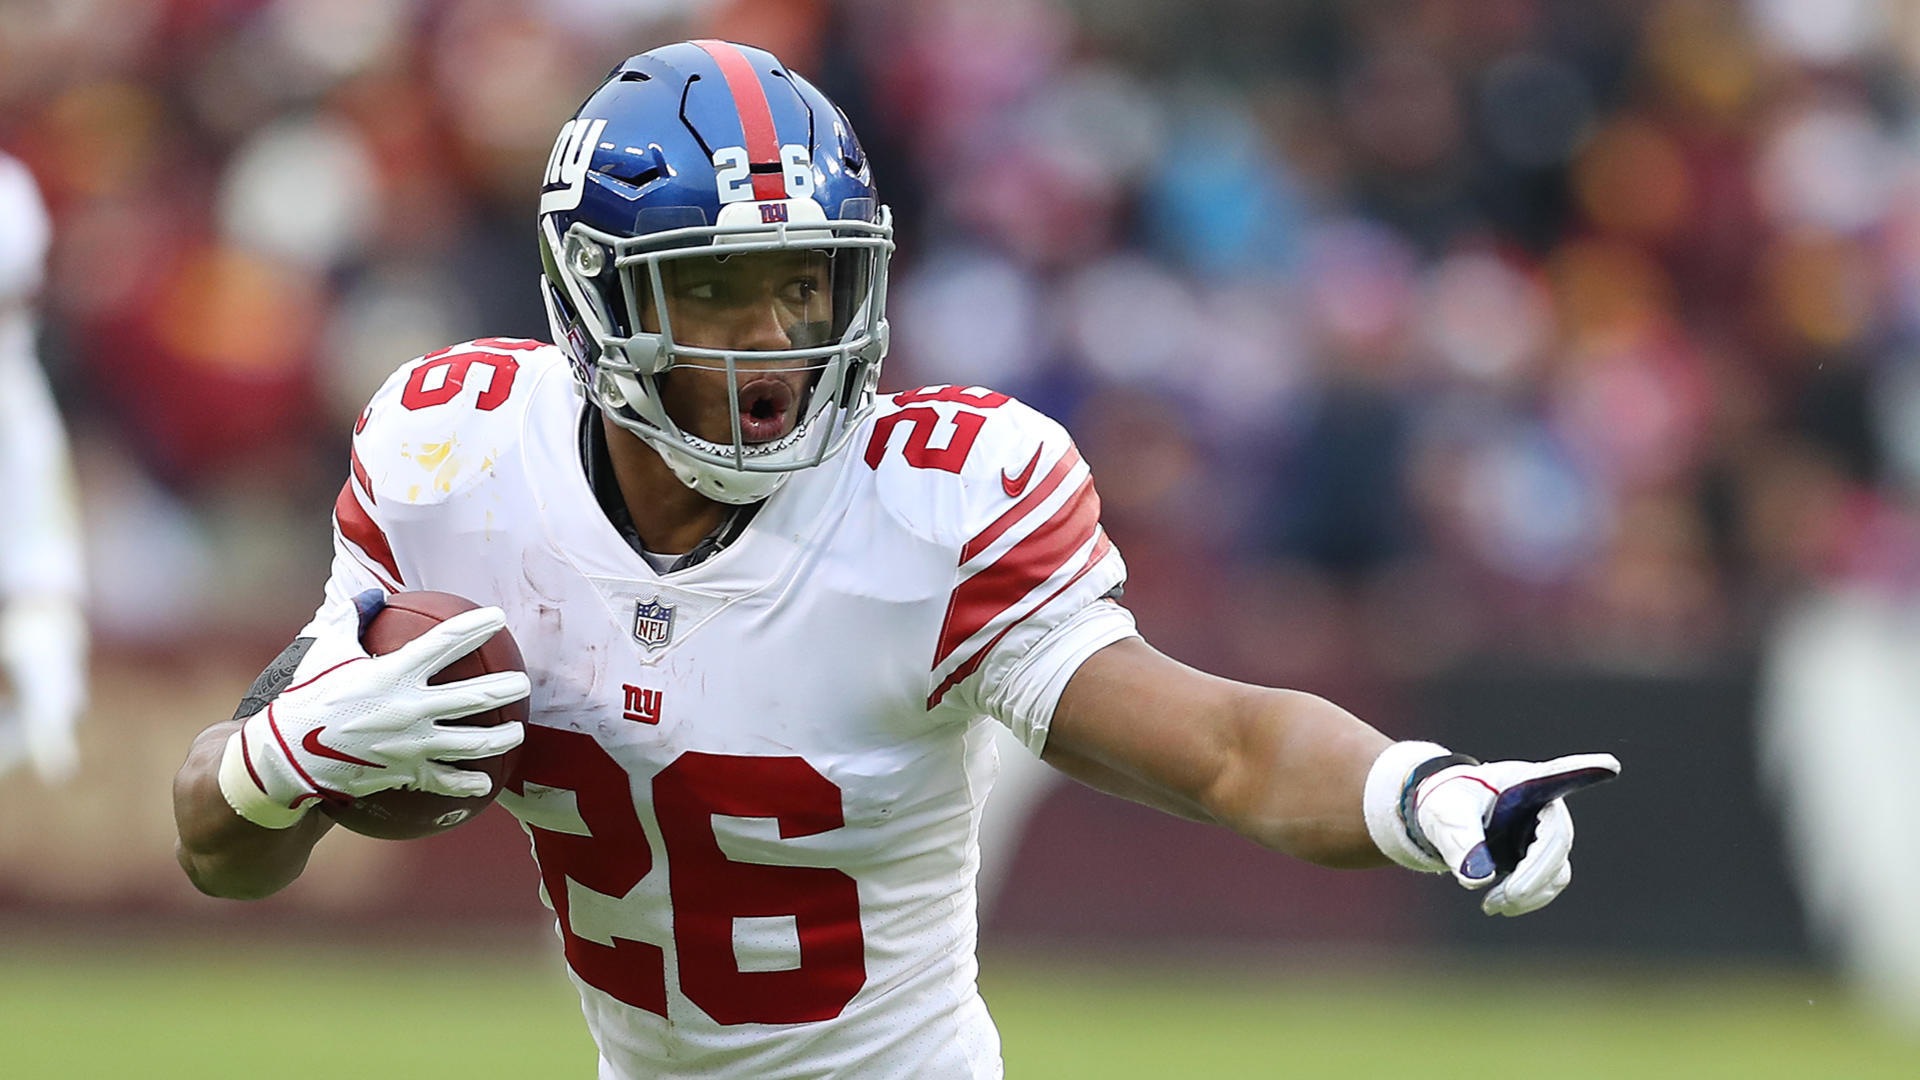 2019 Fantasy Football Team Previews: Saquon Barkley will have to carry the Giants